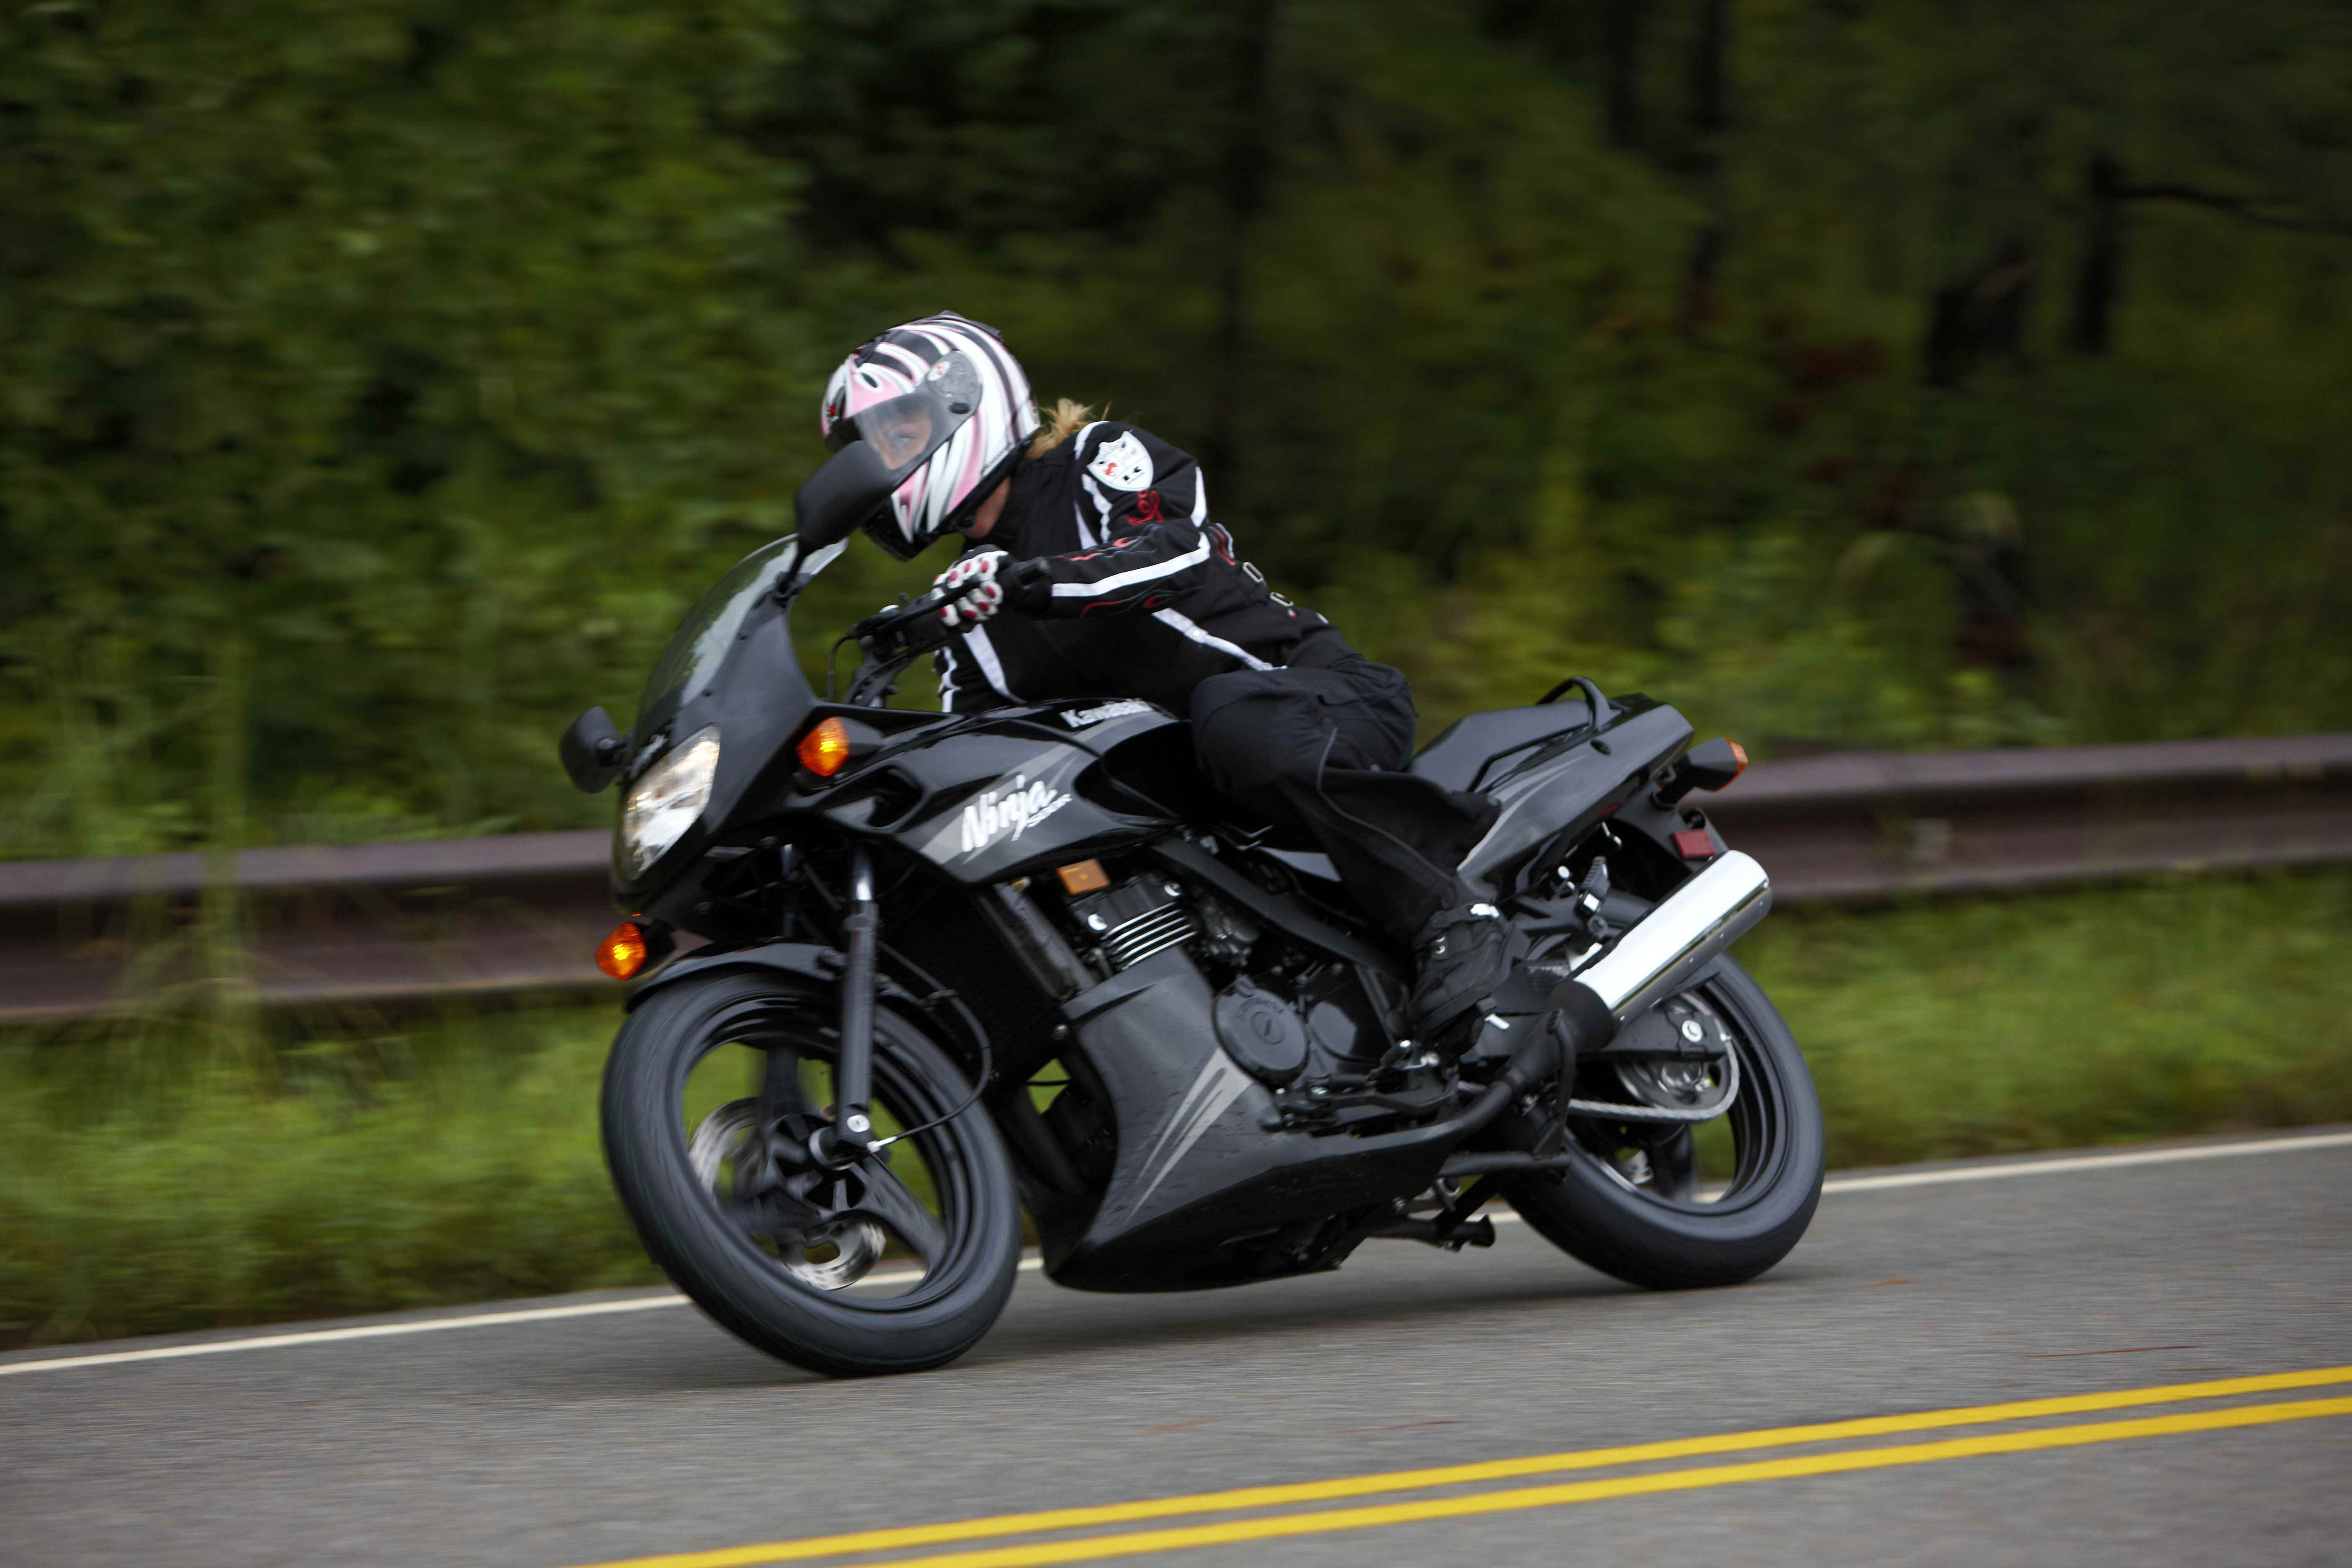 2009 Kawasaki Ninja 500R Review - Top Speed